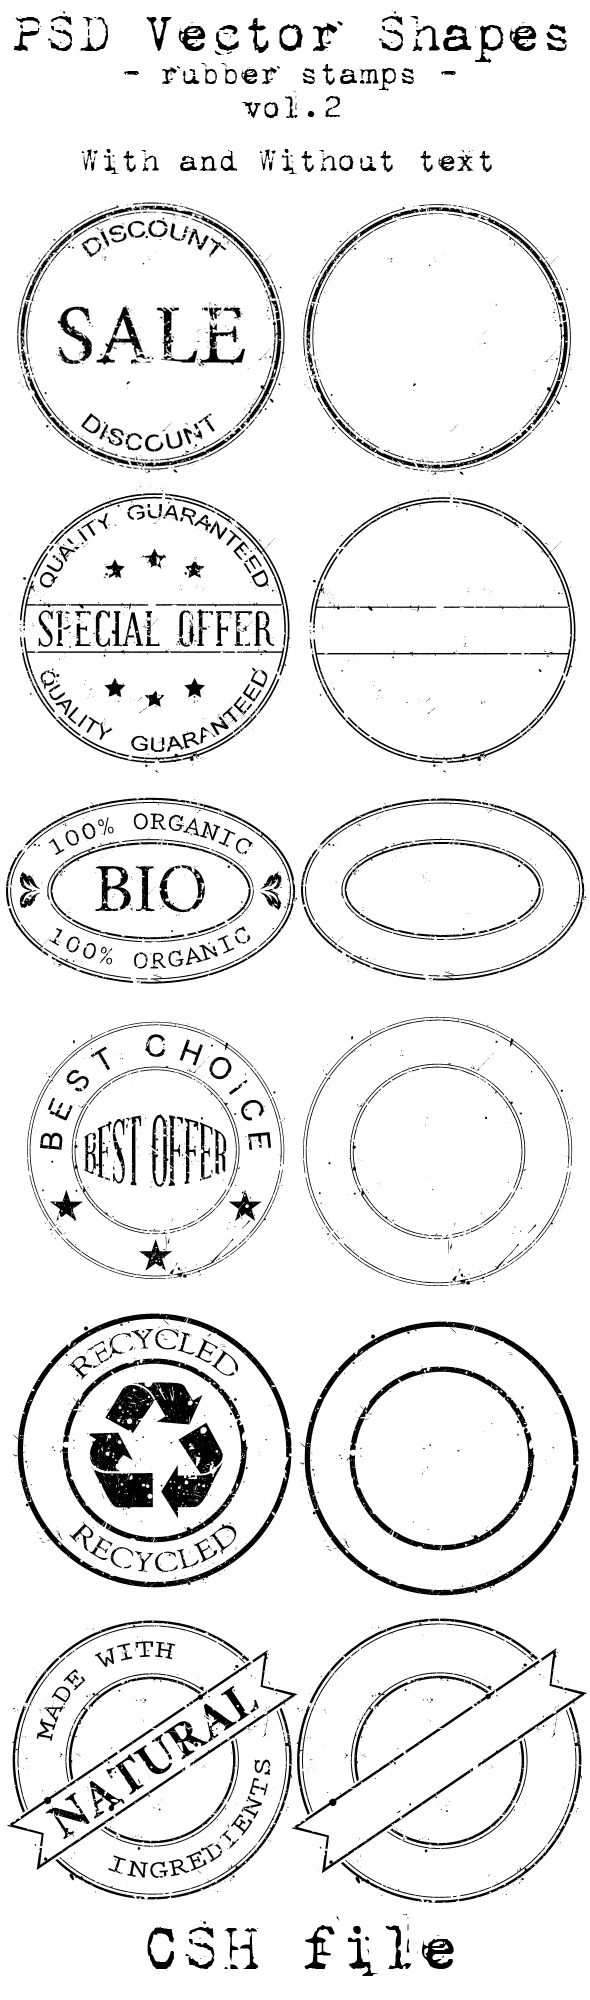 PSD Vector Shapes rubber stamps Vol 2